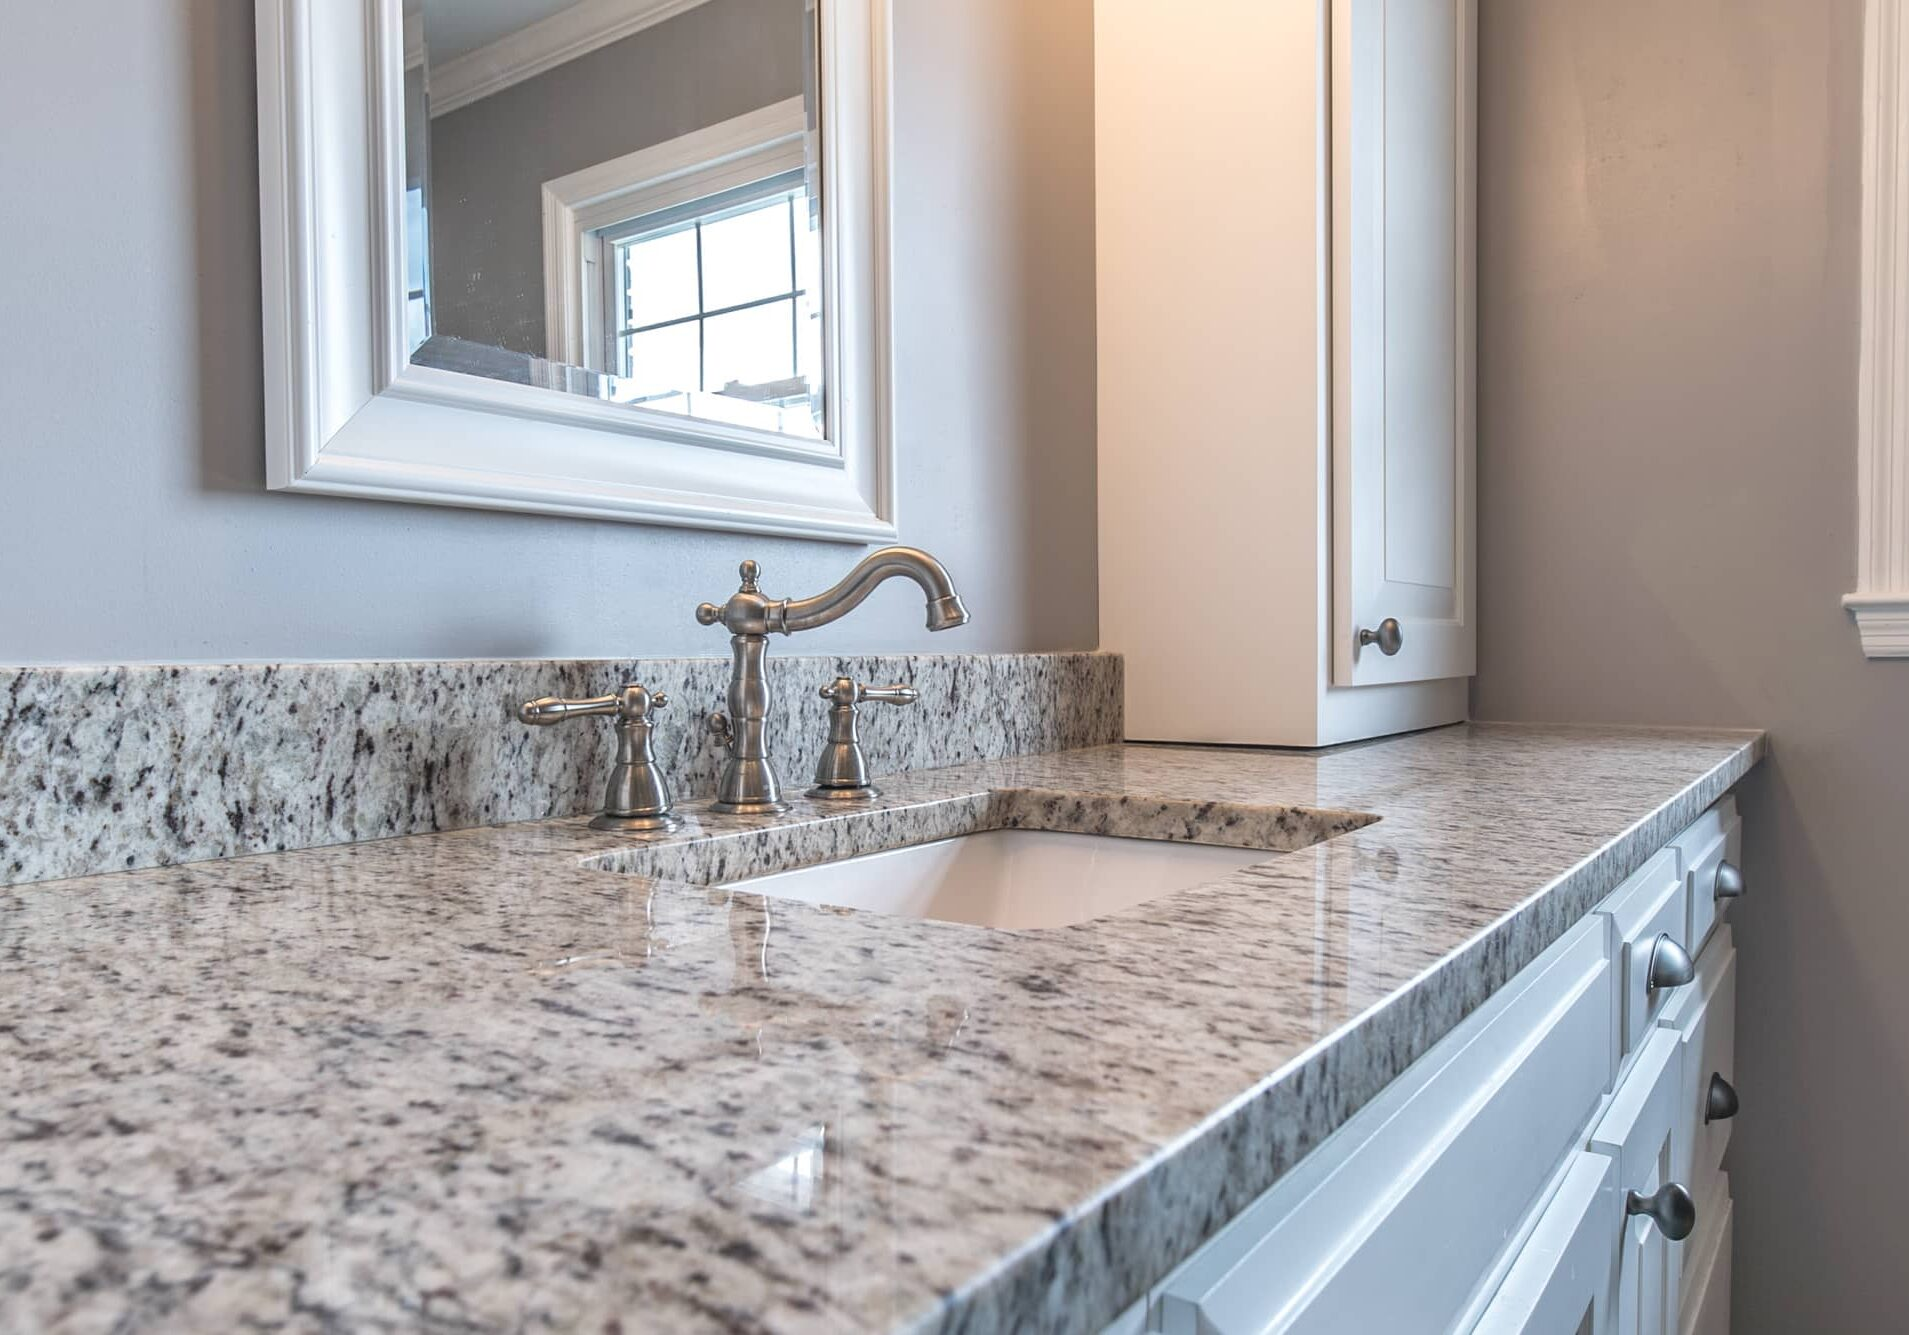 Granite Countertops In Columbia Sc Your Dream Kitchen Awaits You